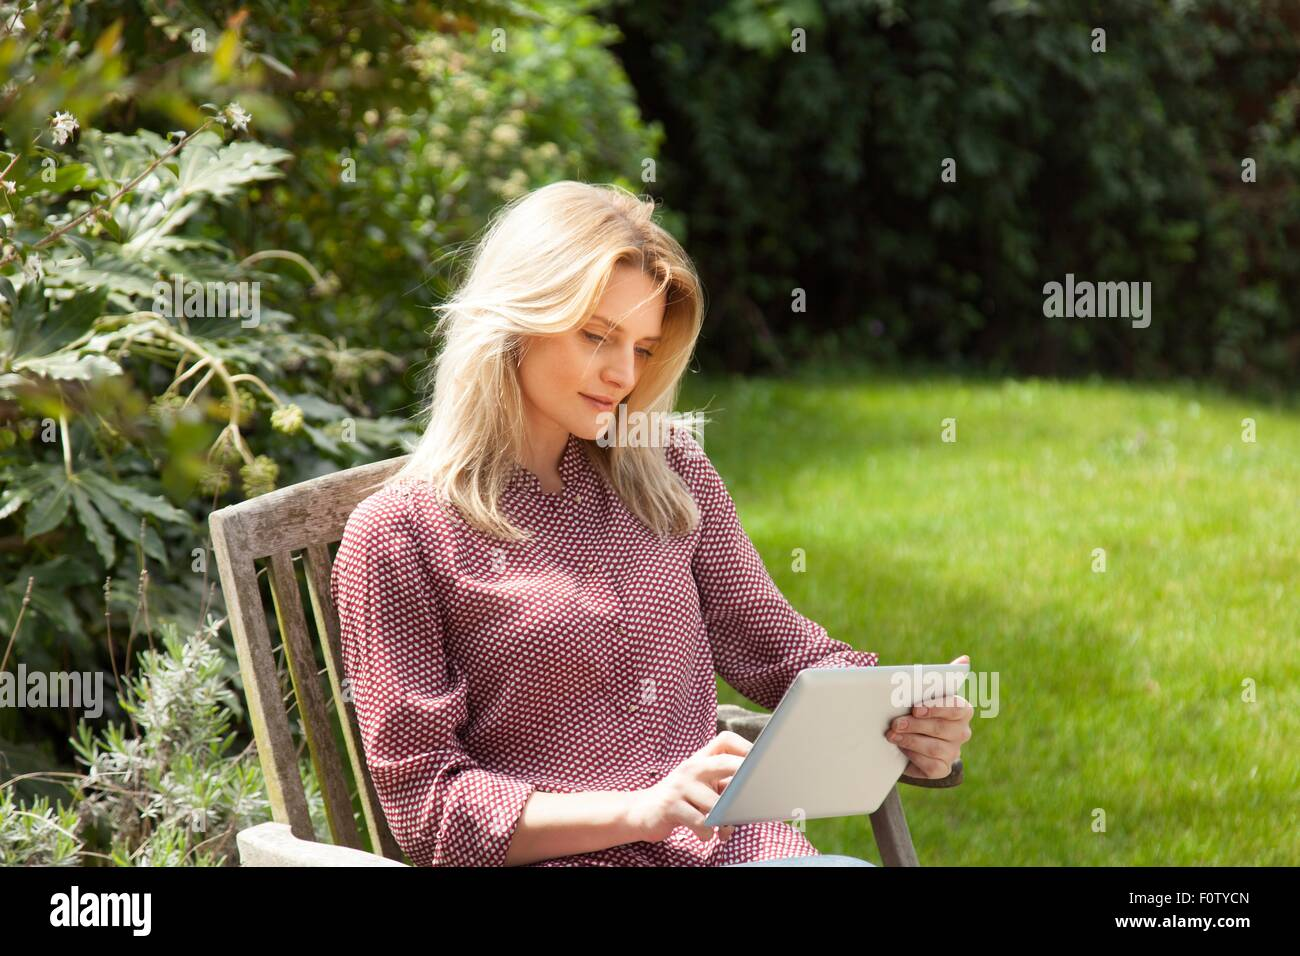 Mid adult woman in garden chair using touchscreen on digital tablet - Stock Image